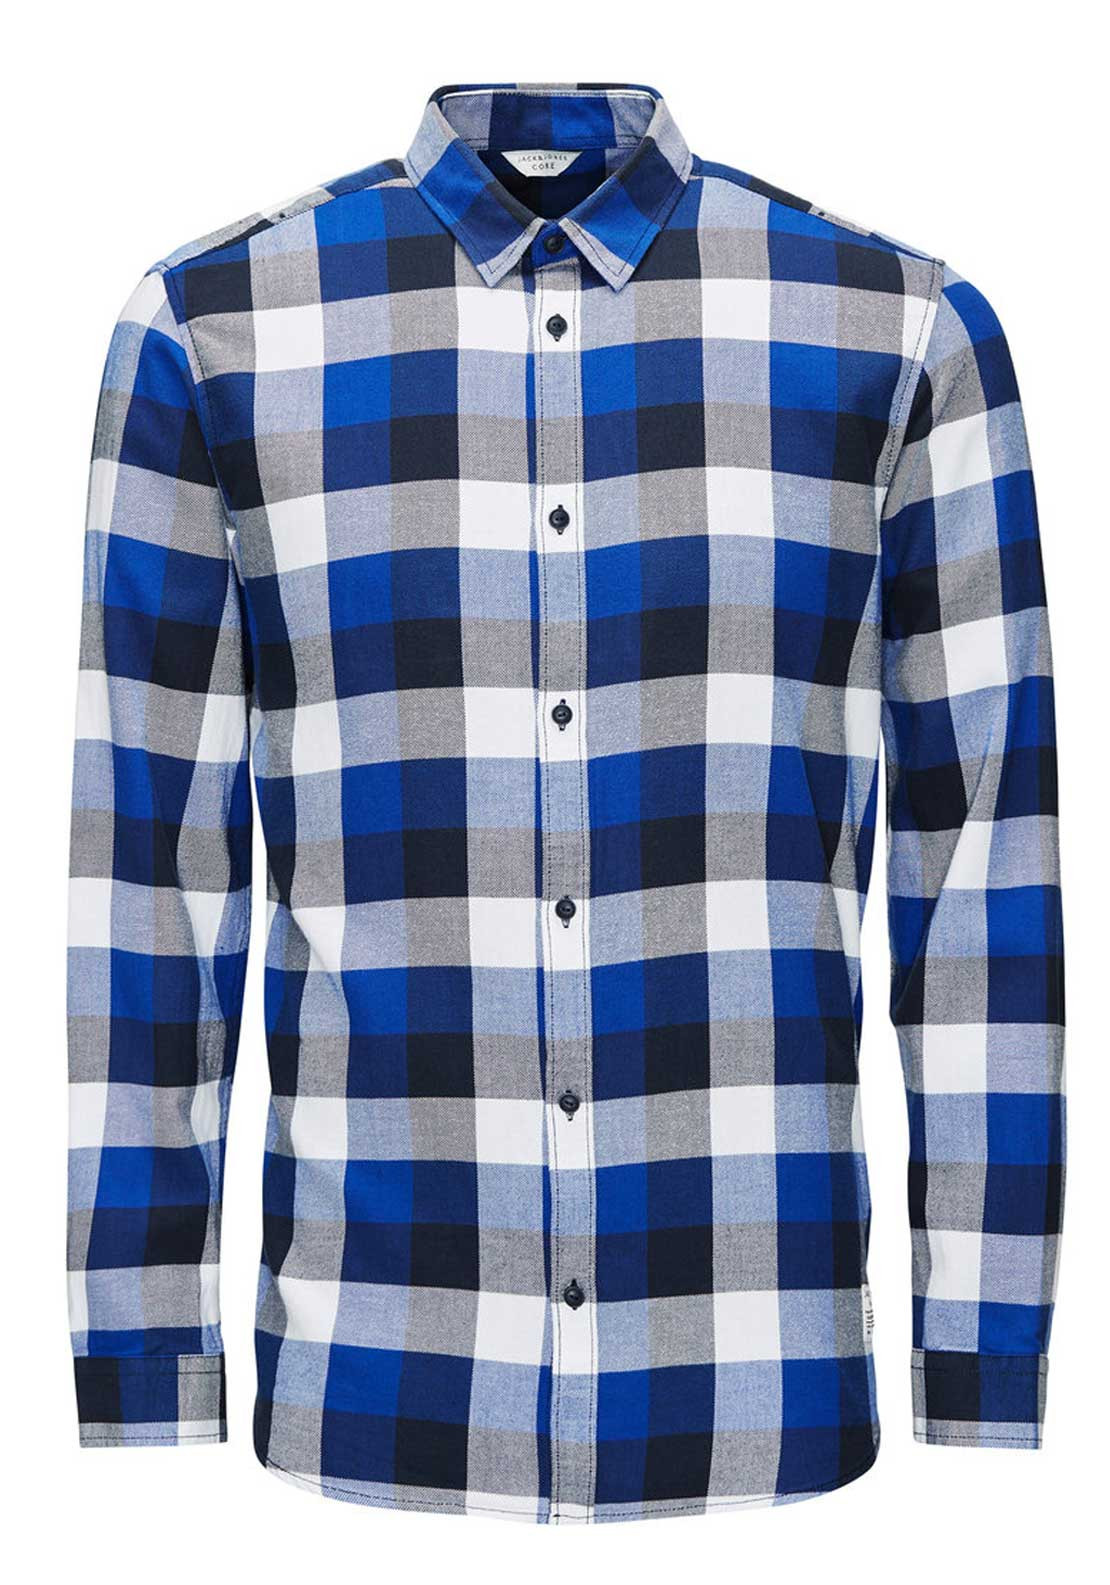 Jack & Jones Gavin Checked Long Sleeve Shirt, Navy Blazer